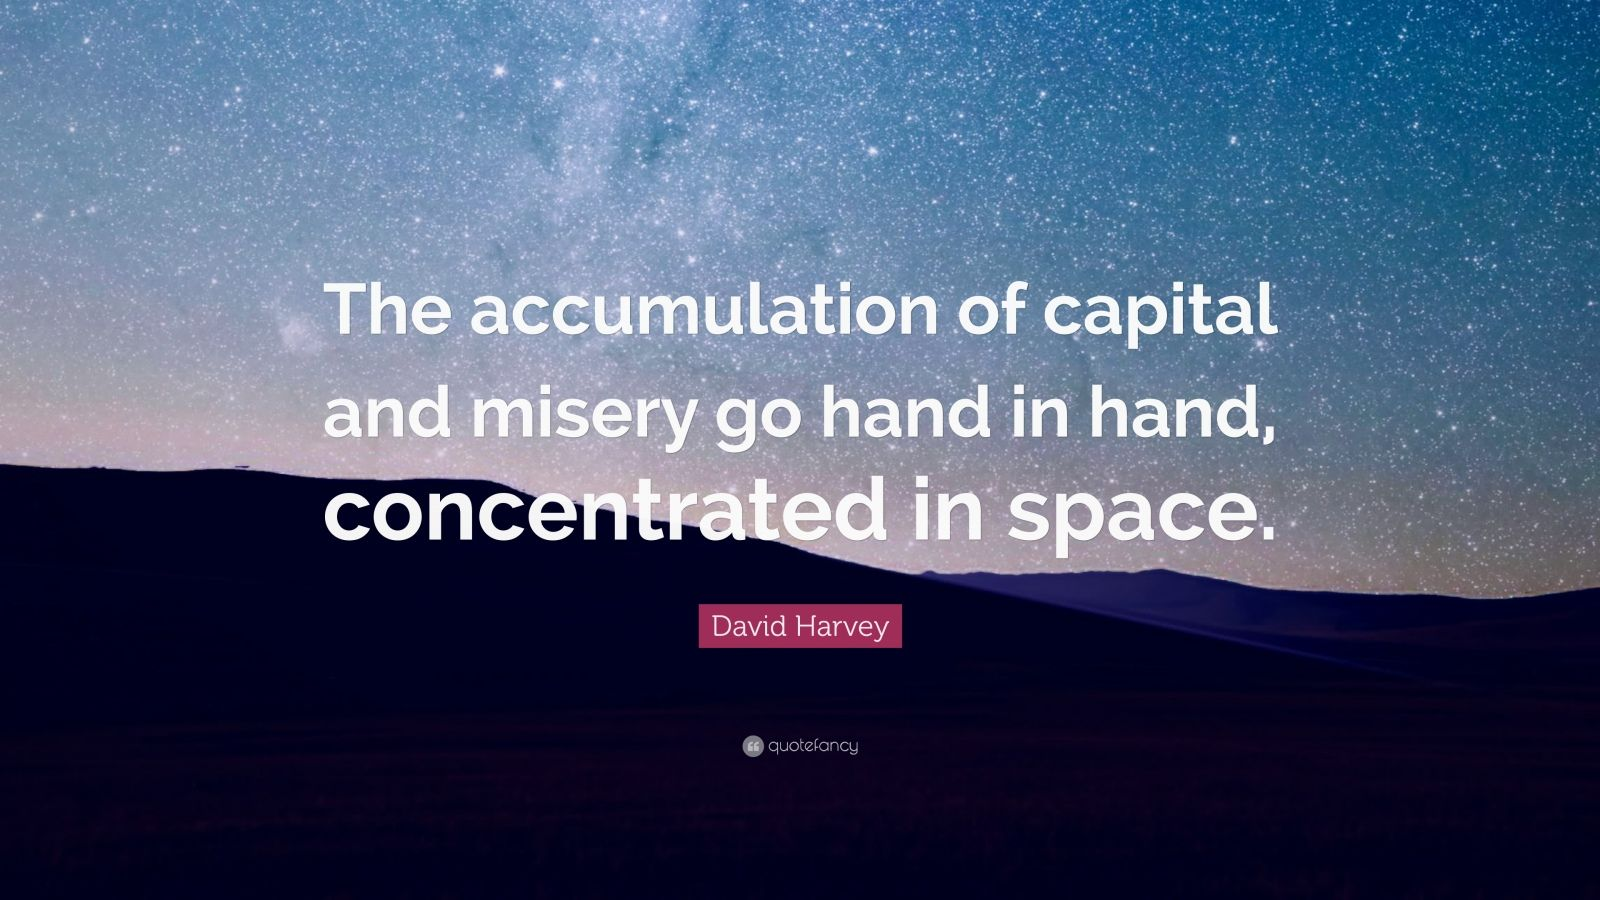 Spaces of capital david harvey pdf to jpg